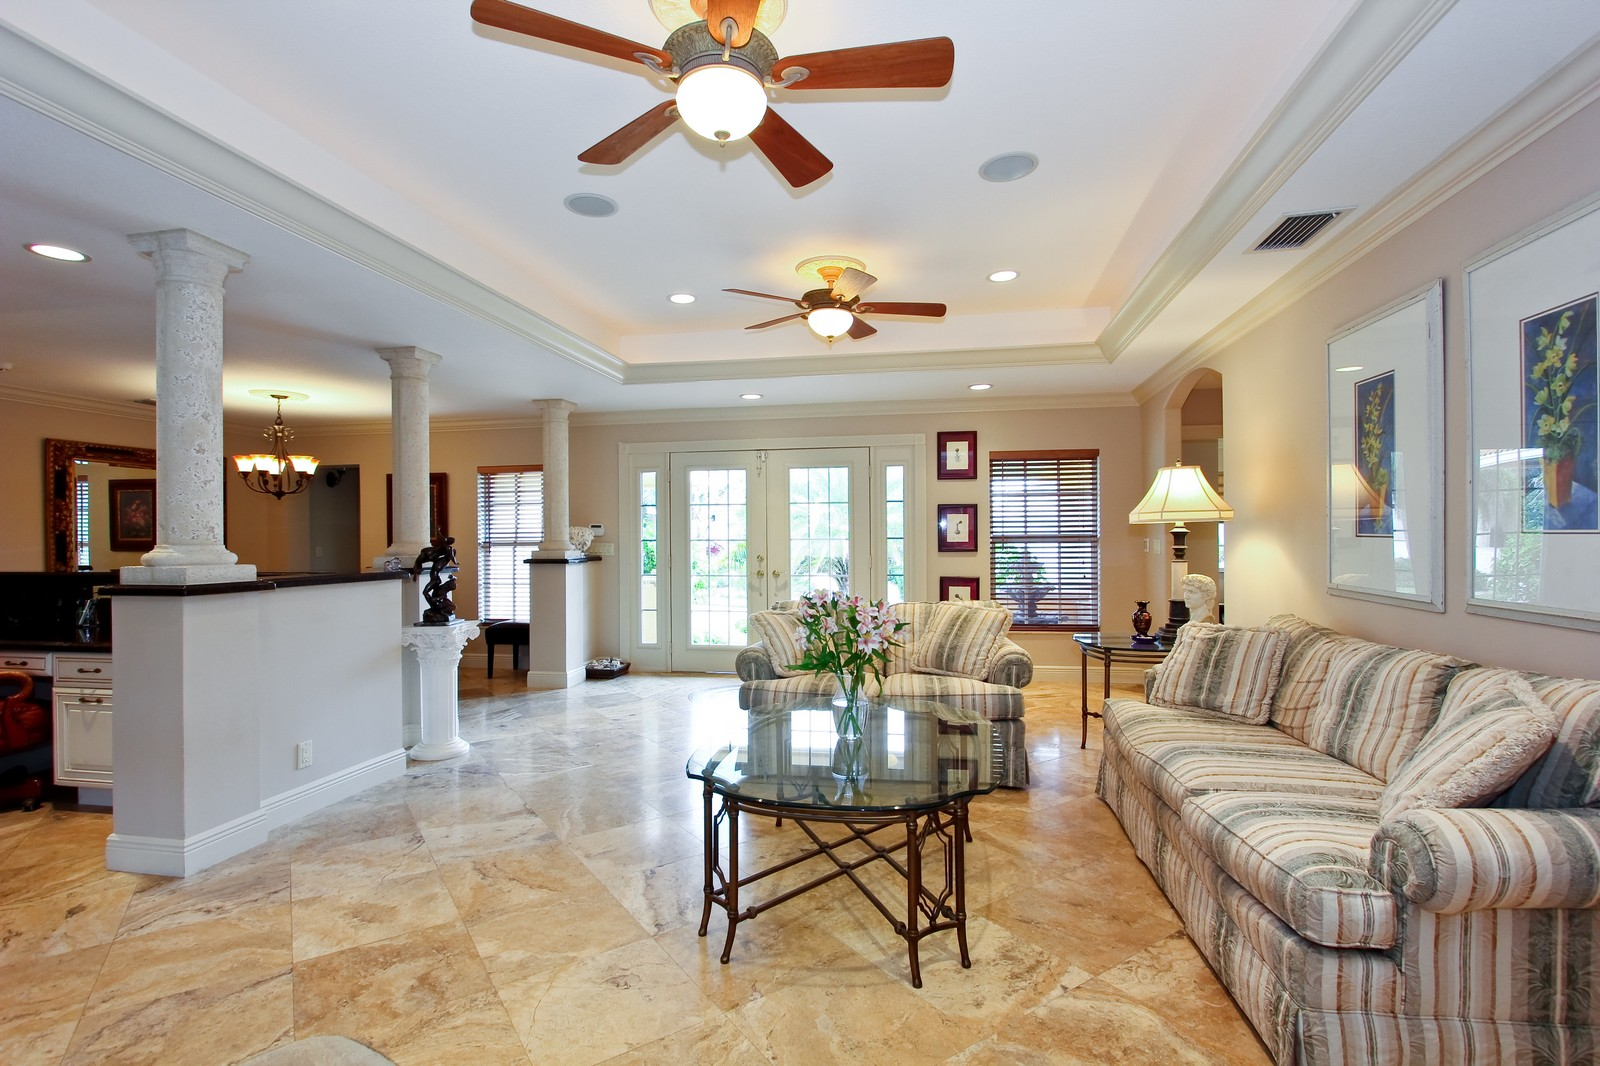 Real Estate Photography - 430 N. Lyra Circle, Juno Beach, FL, 33408 - Living Room